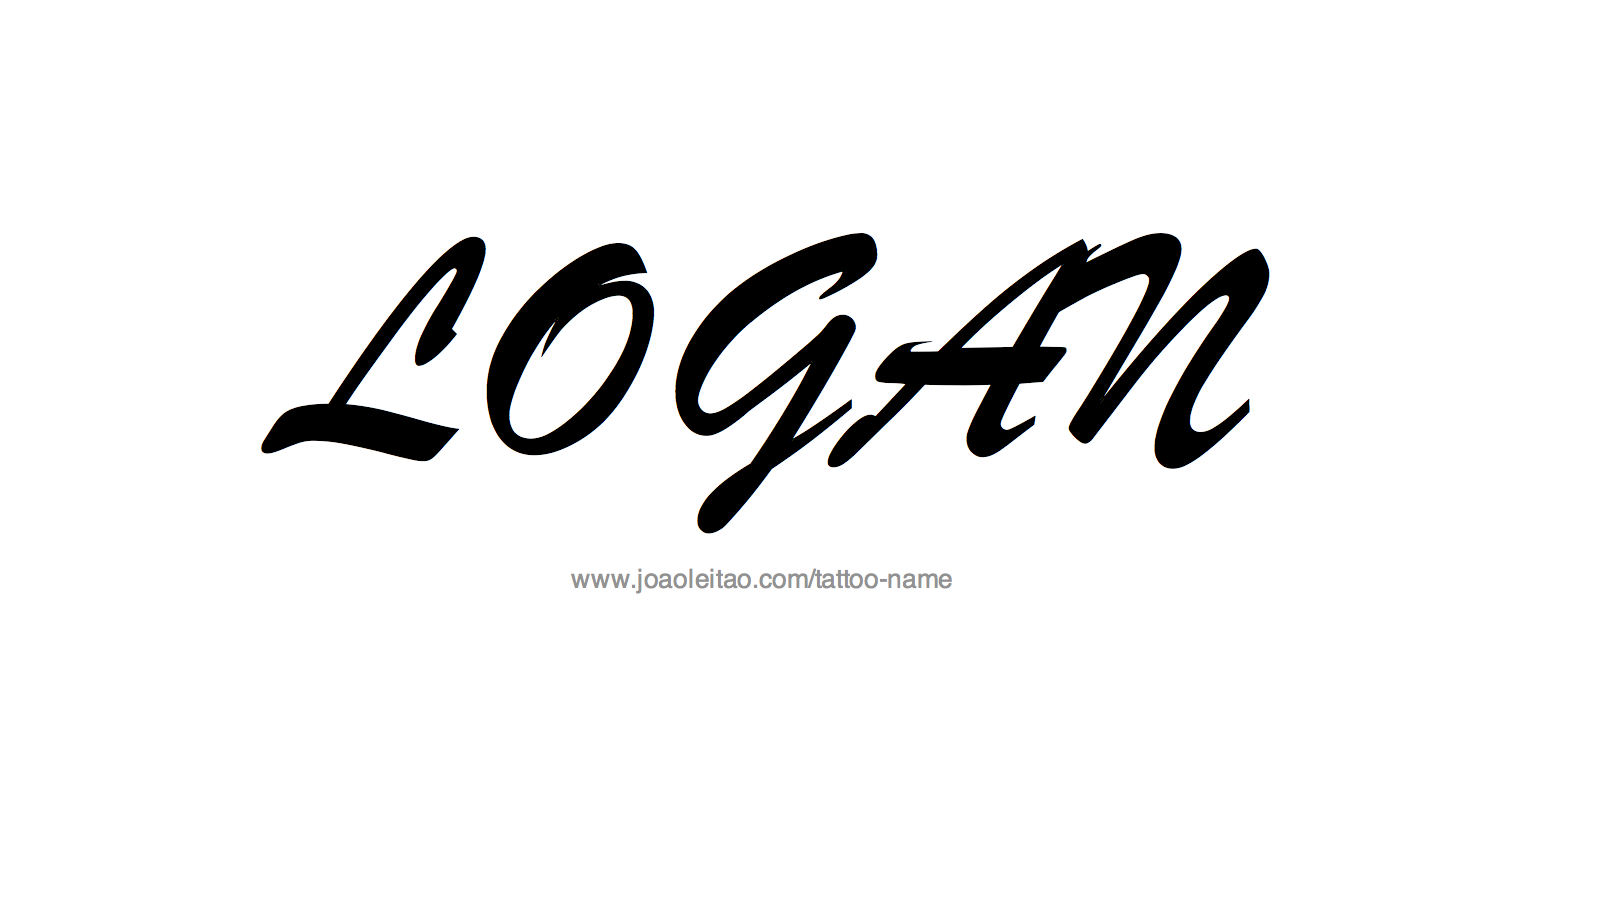 Tattoo Design Name Logan